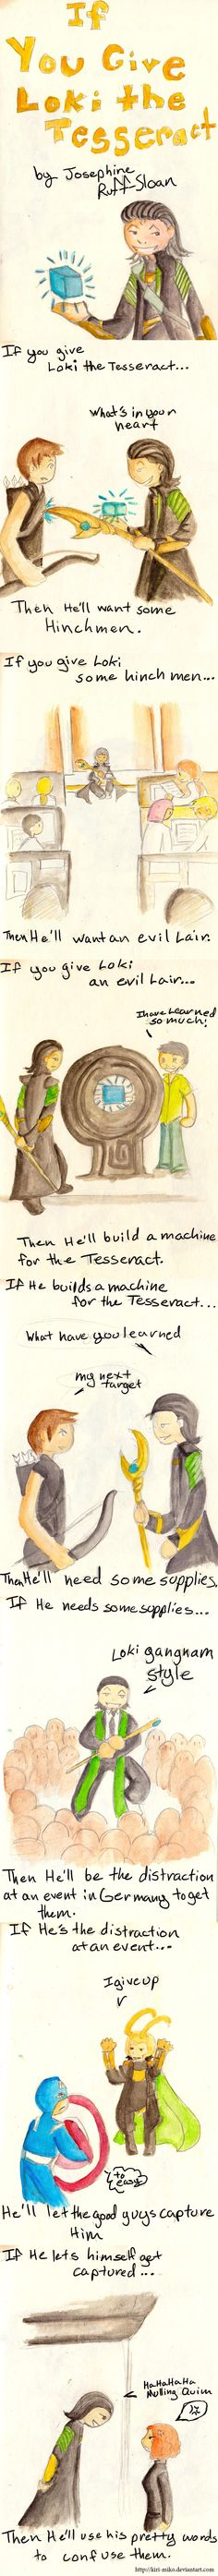 If You Give Loki the tesseract is a fun twist of the avengers movie